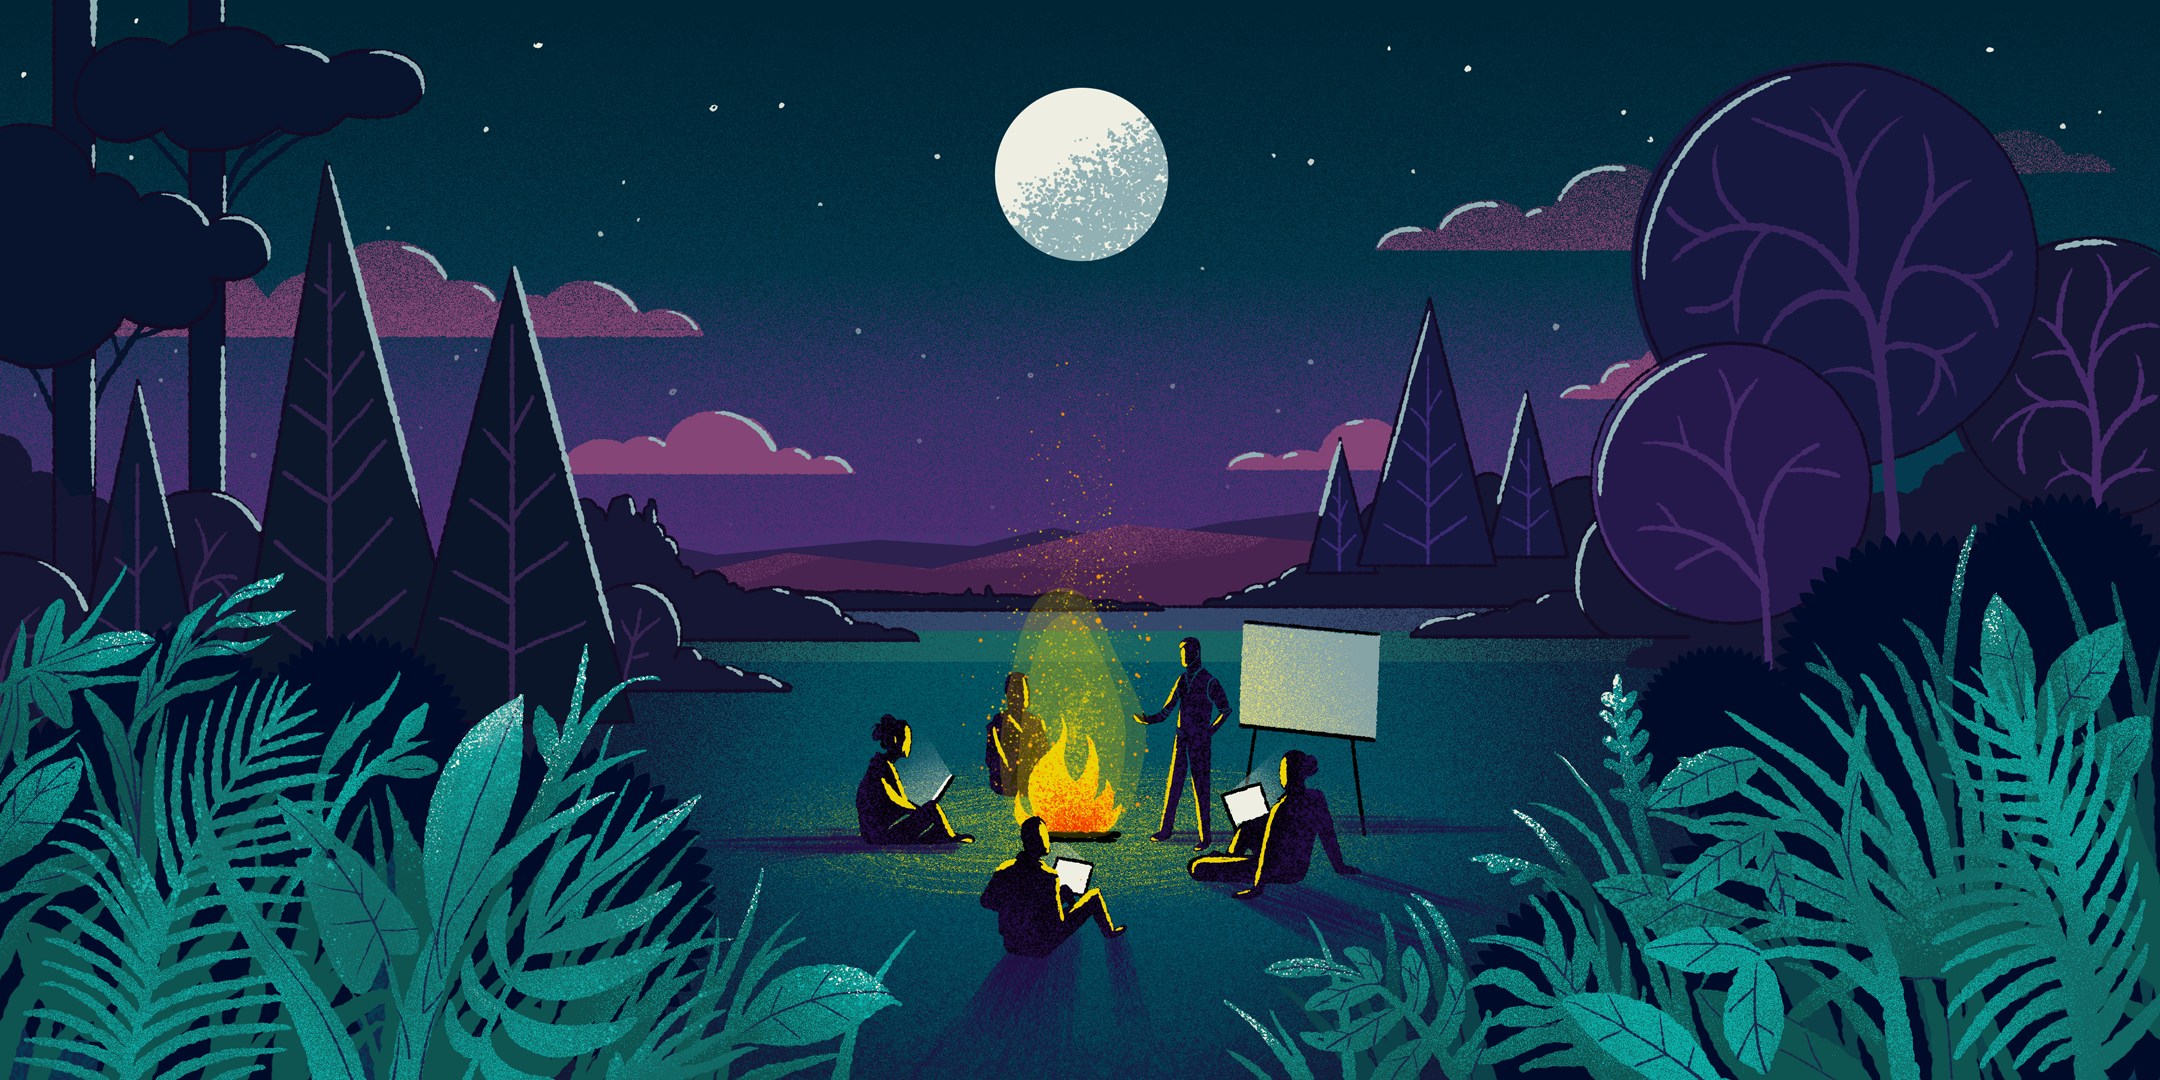 Figures gathered around a campfire outdoors at night with one figure giving a presentation